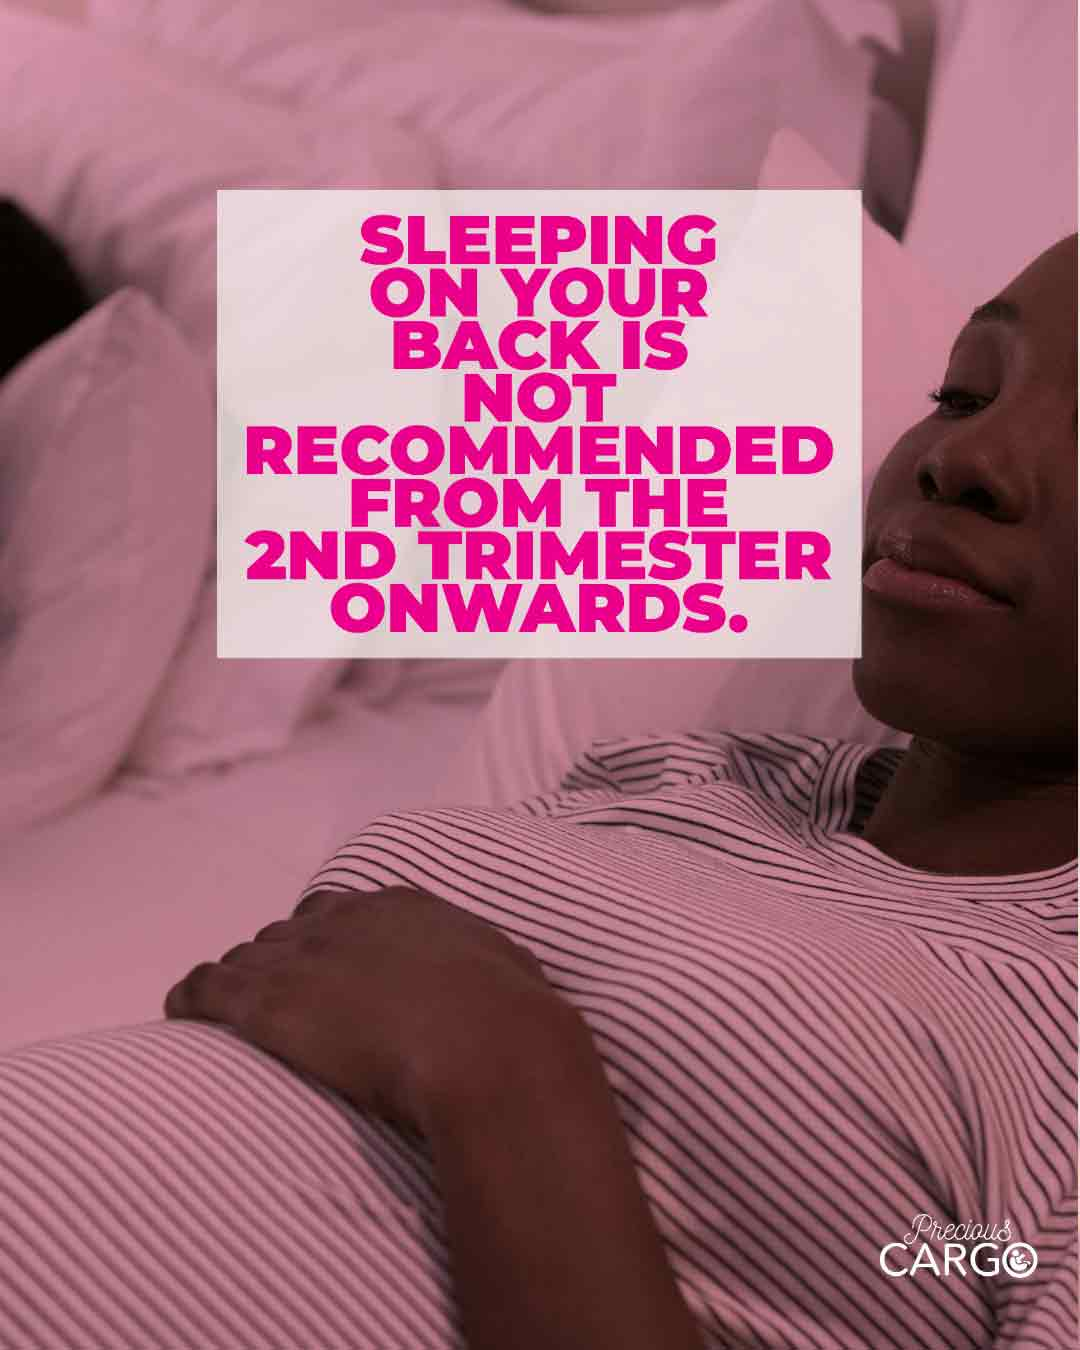 Sleeping on your back during pregnancy